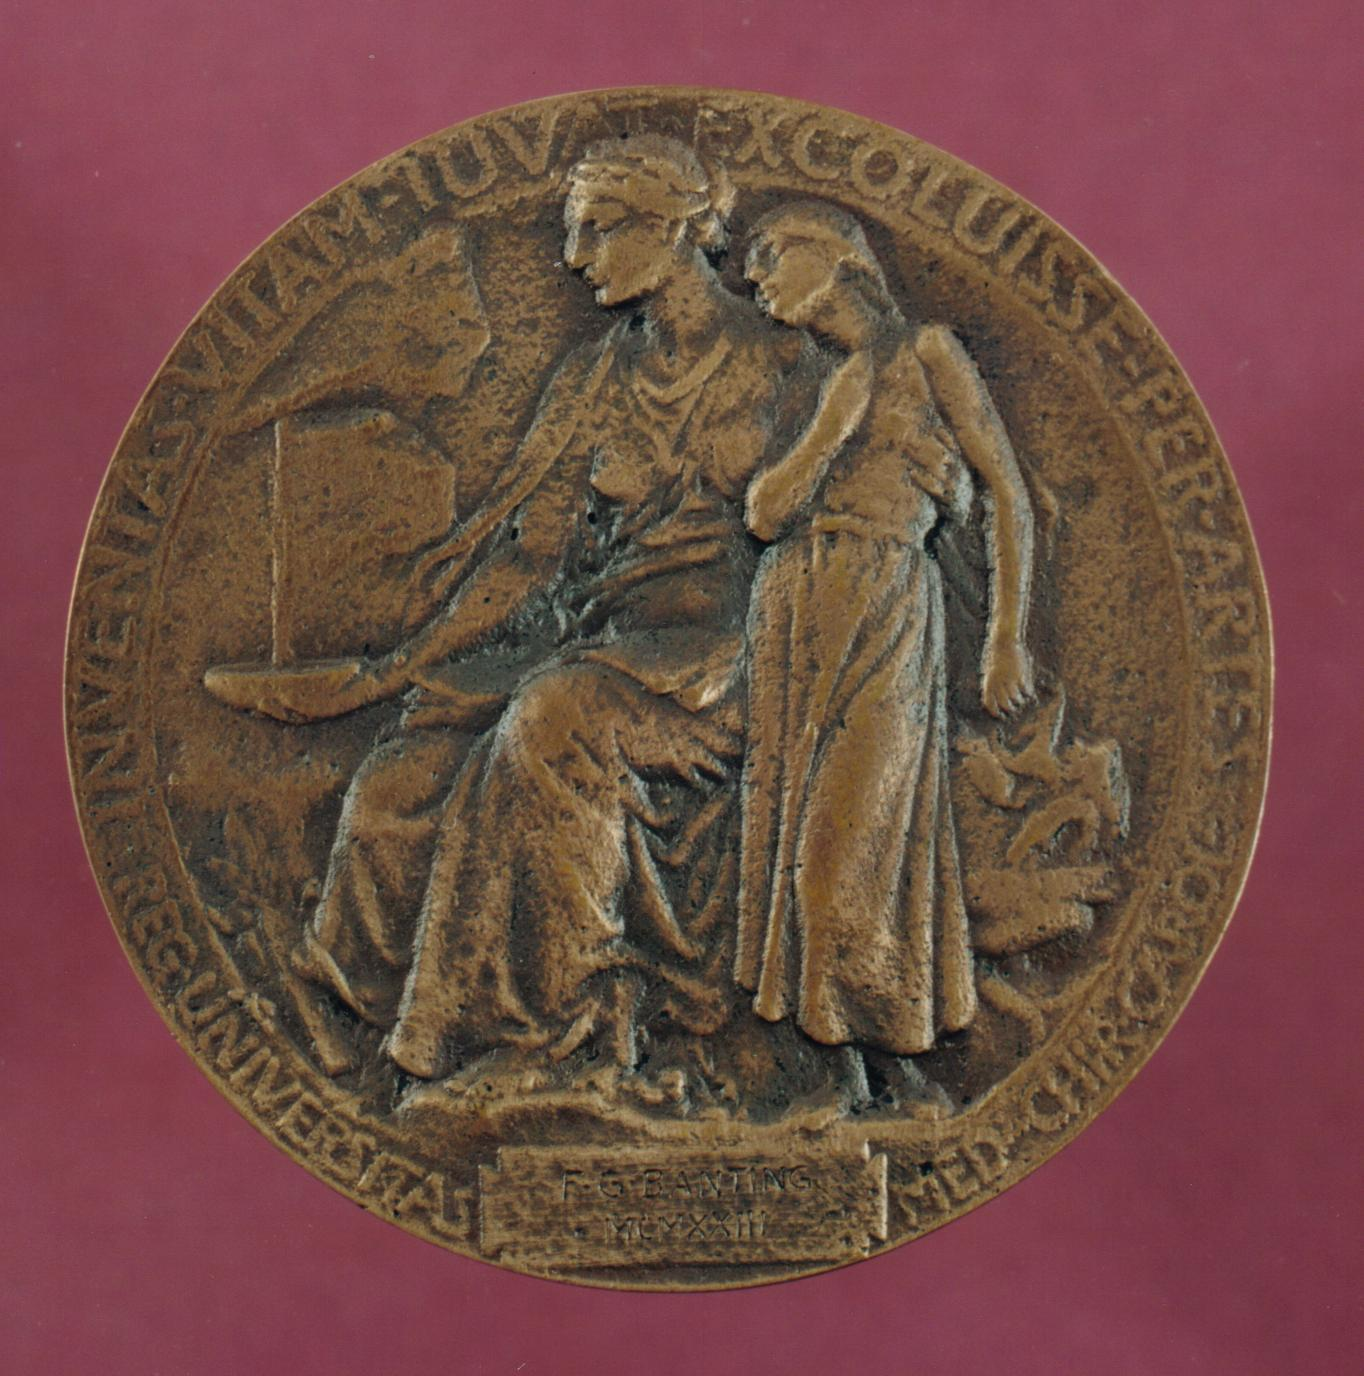 """The replica is sitting on top of a red cushion. The image on the medal is of two women, one older who is sitting and one younger who is standing. The inscription at the bottom of the medal reads, """"F.G. Banting MCXXXIII""""."""